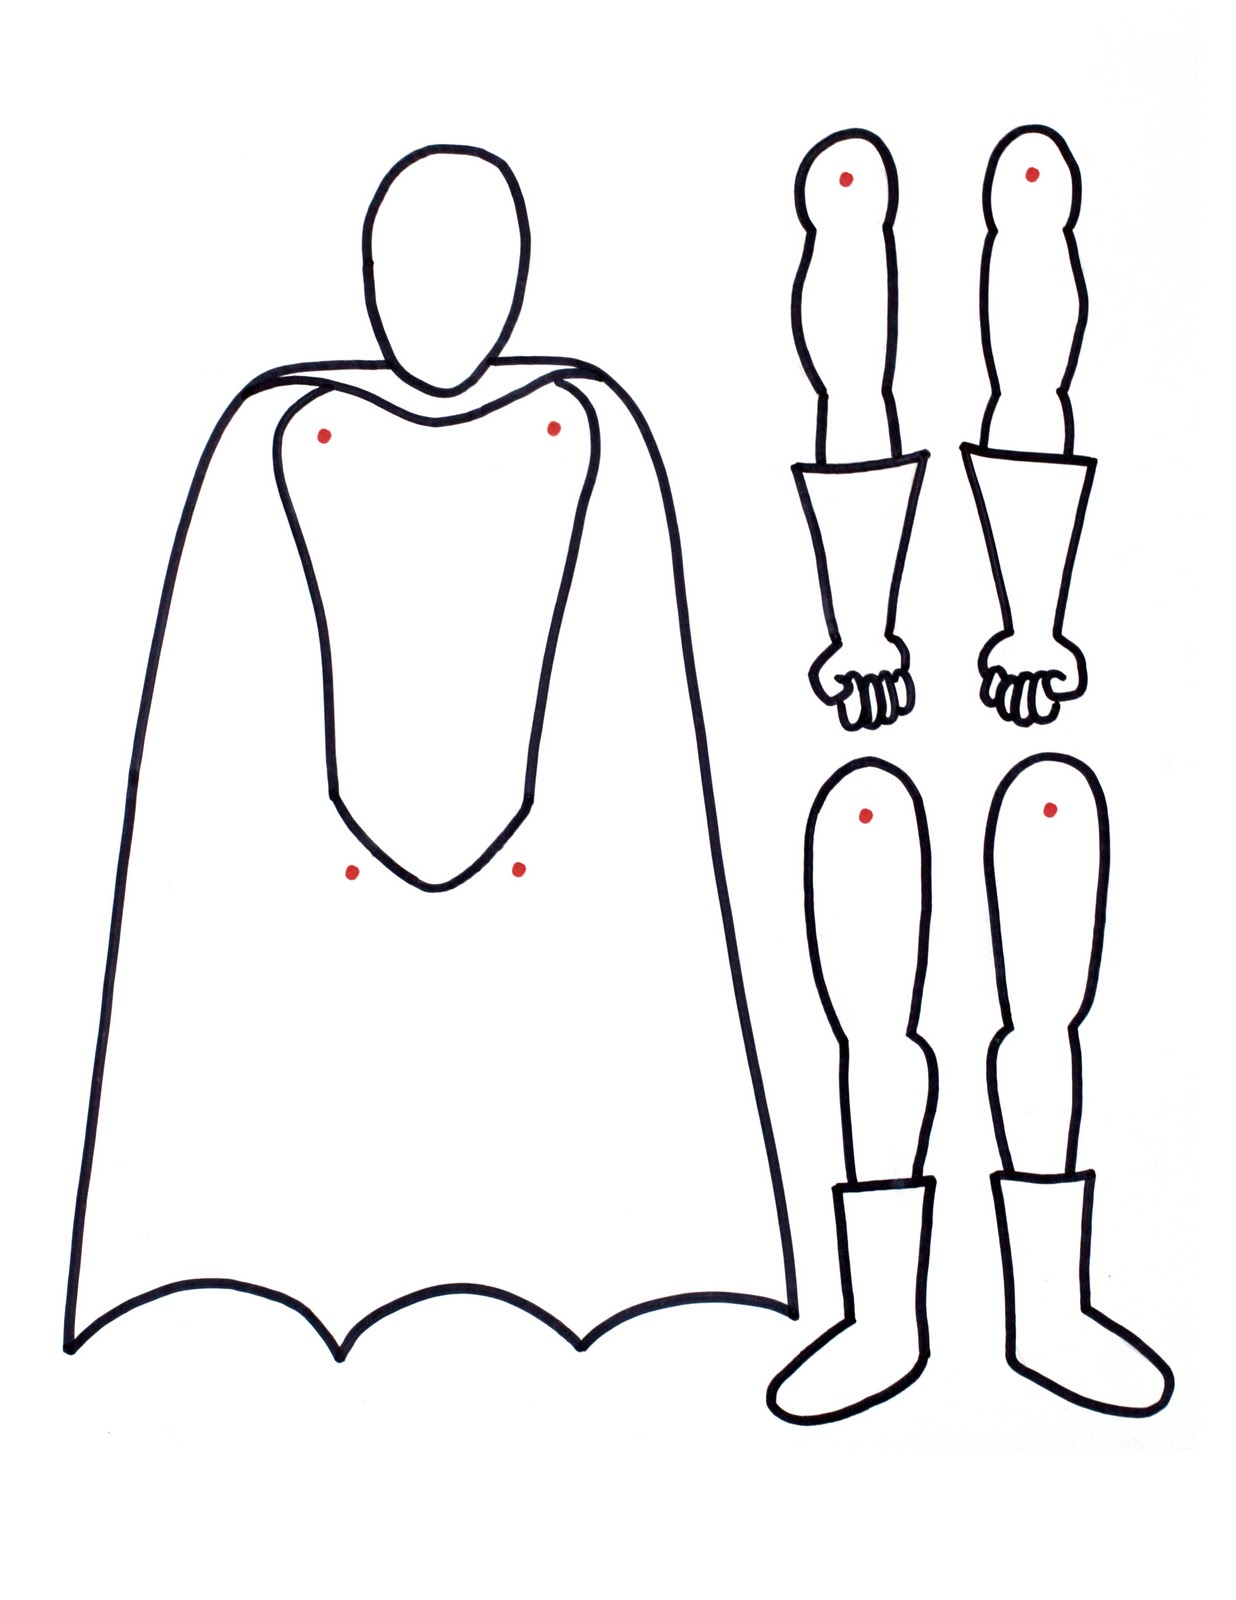 ... ** click here for some other fun ideas for your superhero paperdolls